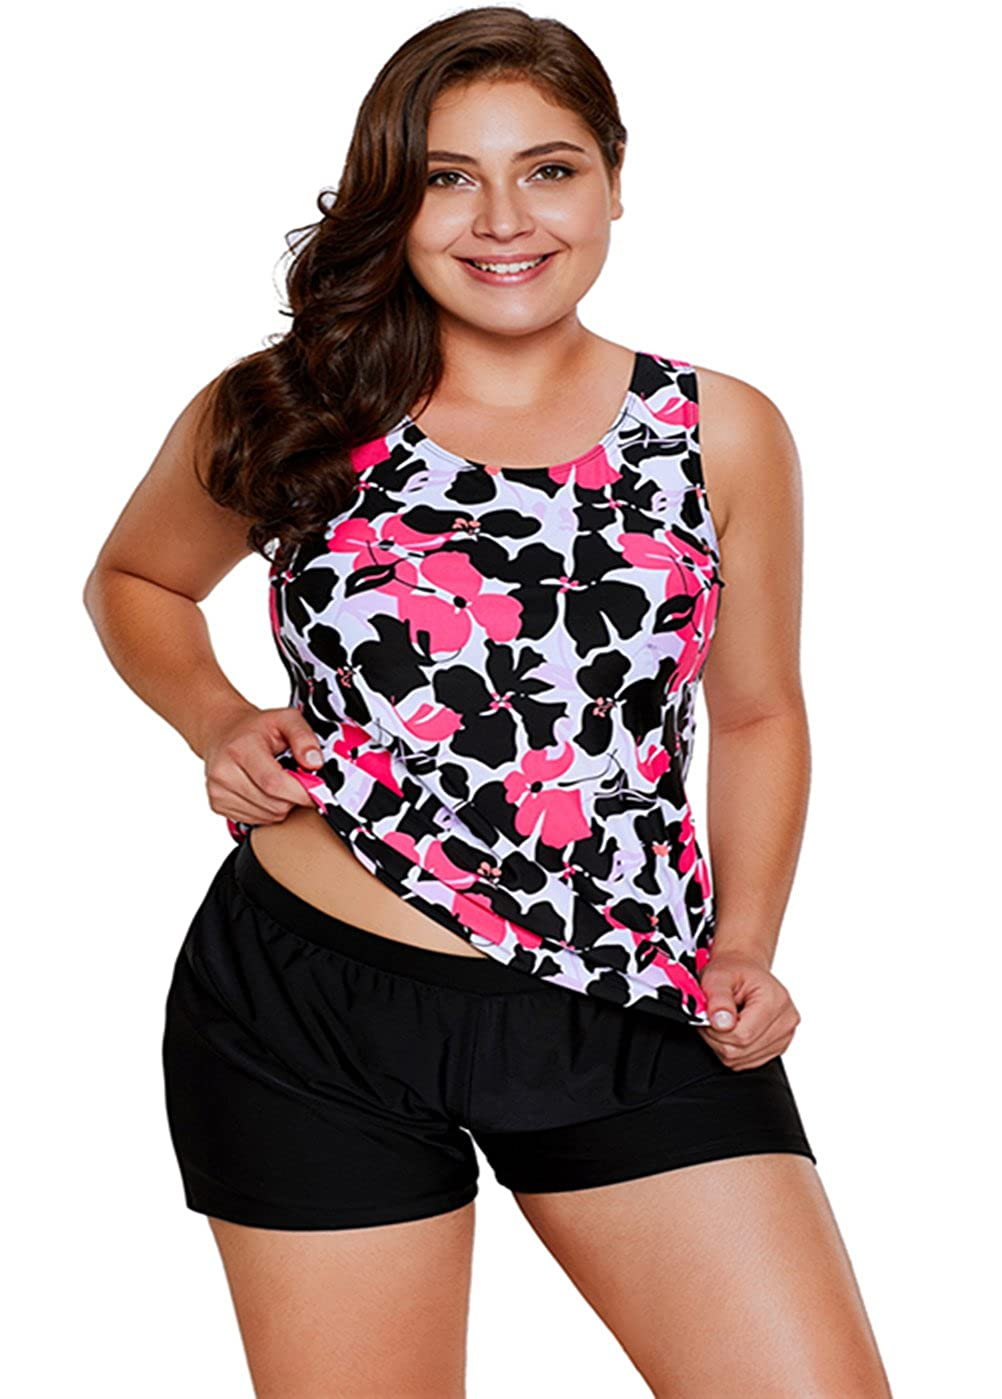 Black Tiksawon Womens Beach Floral Printed Tankini Top Set Swimsuit Swimwear